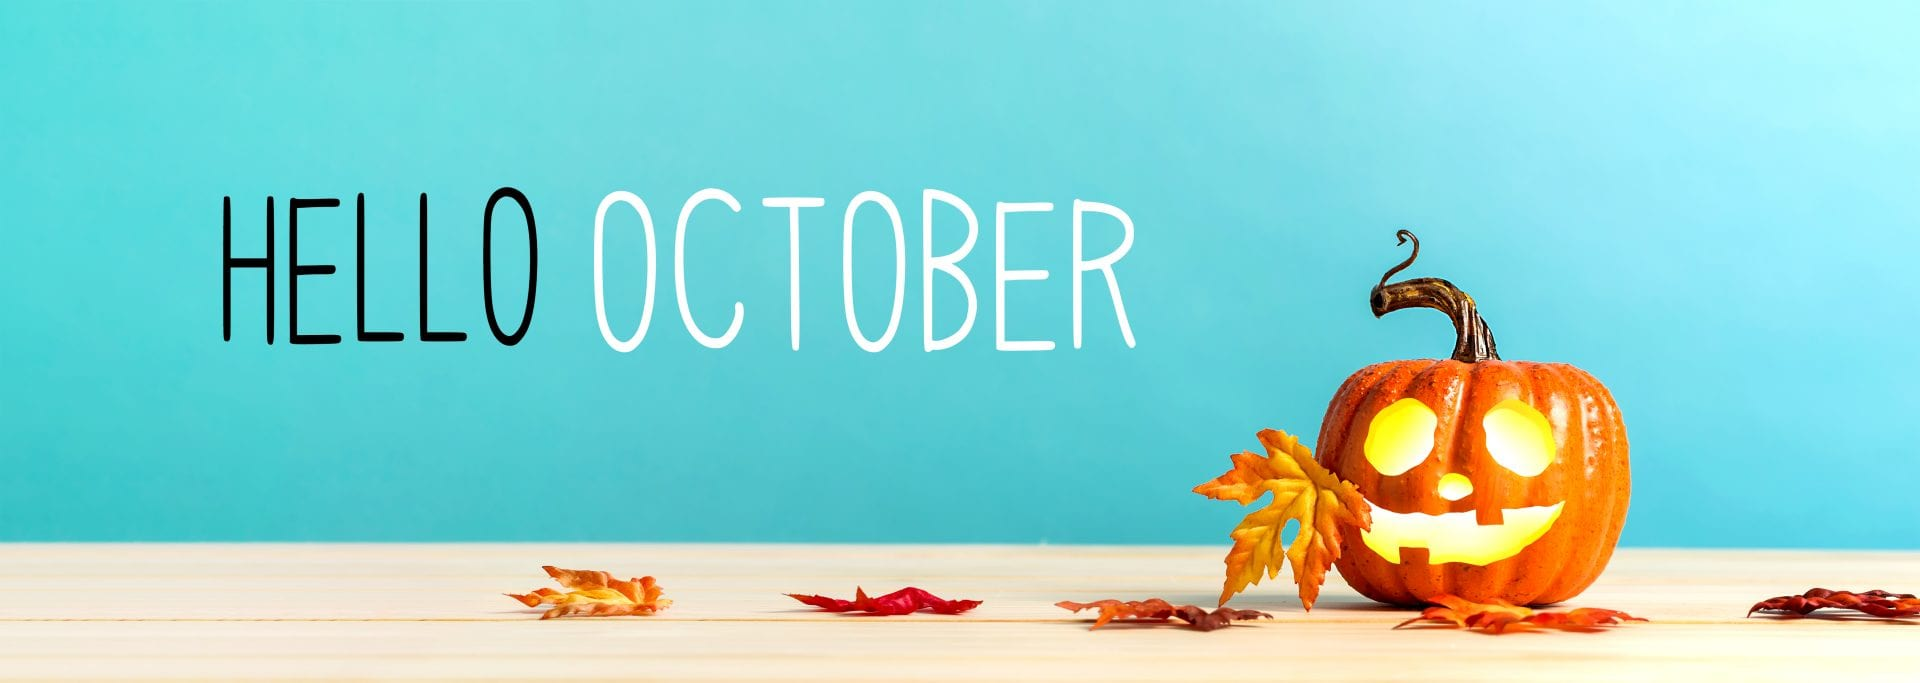 Hello October messag with pumpkin with leaves on a blue background